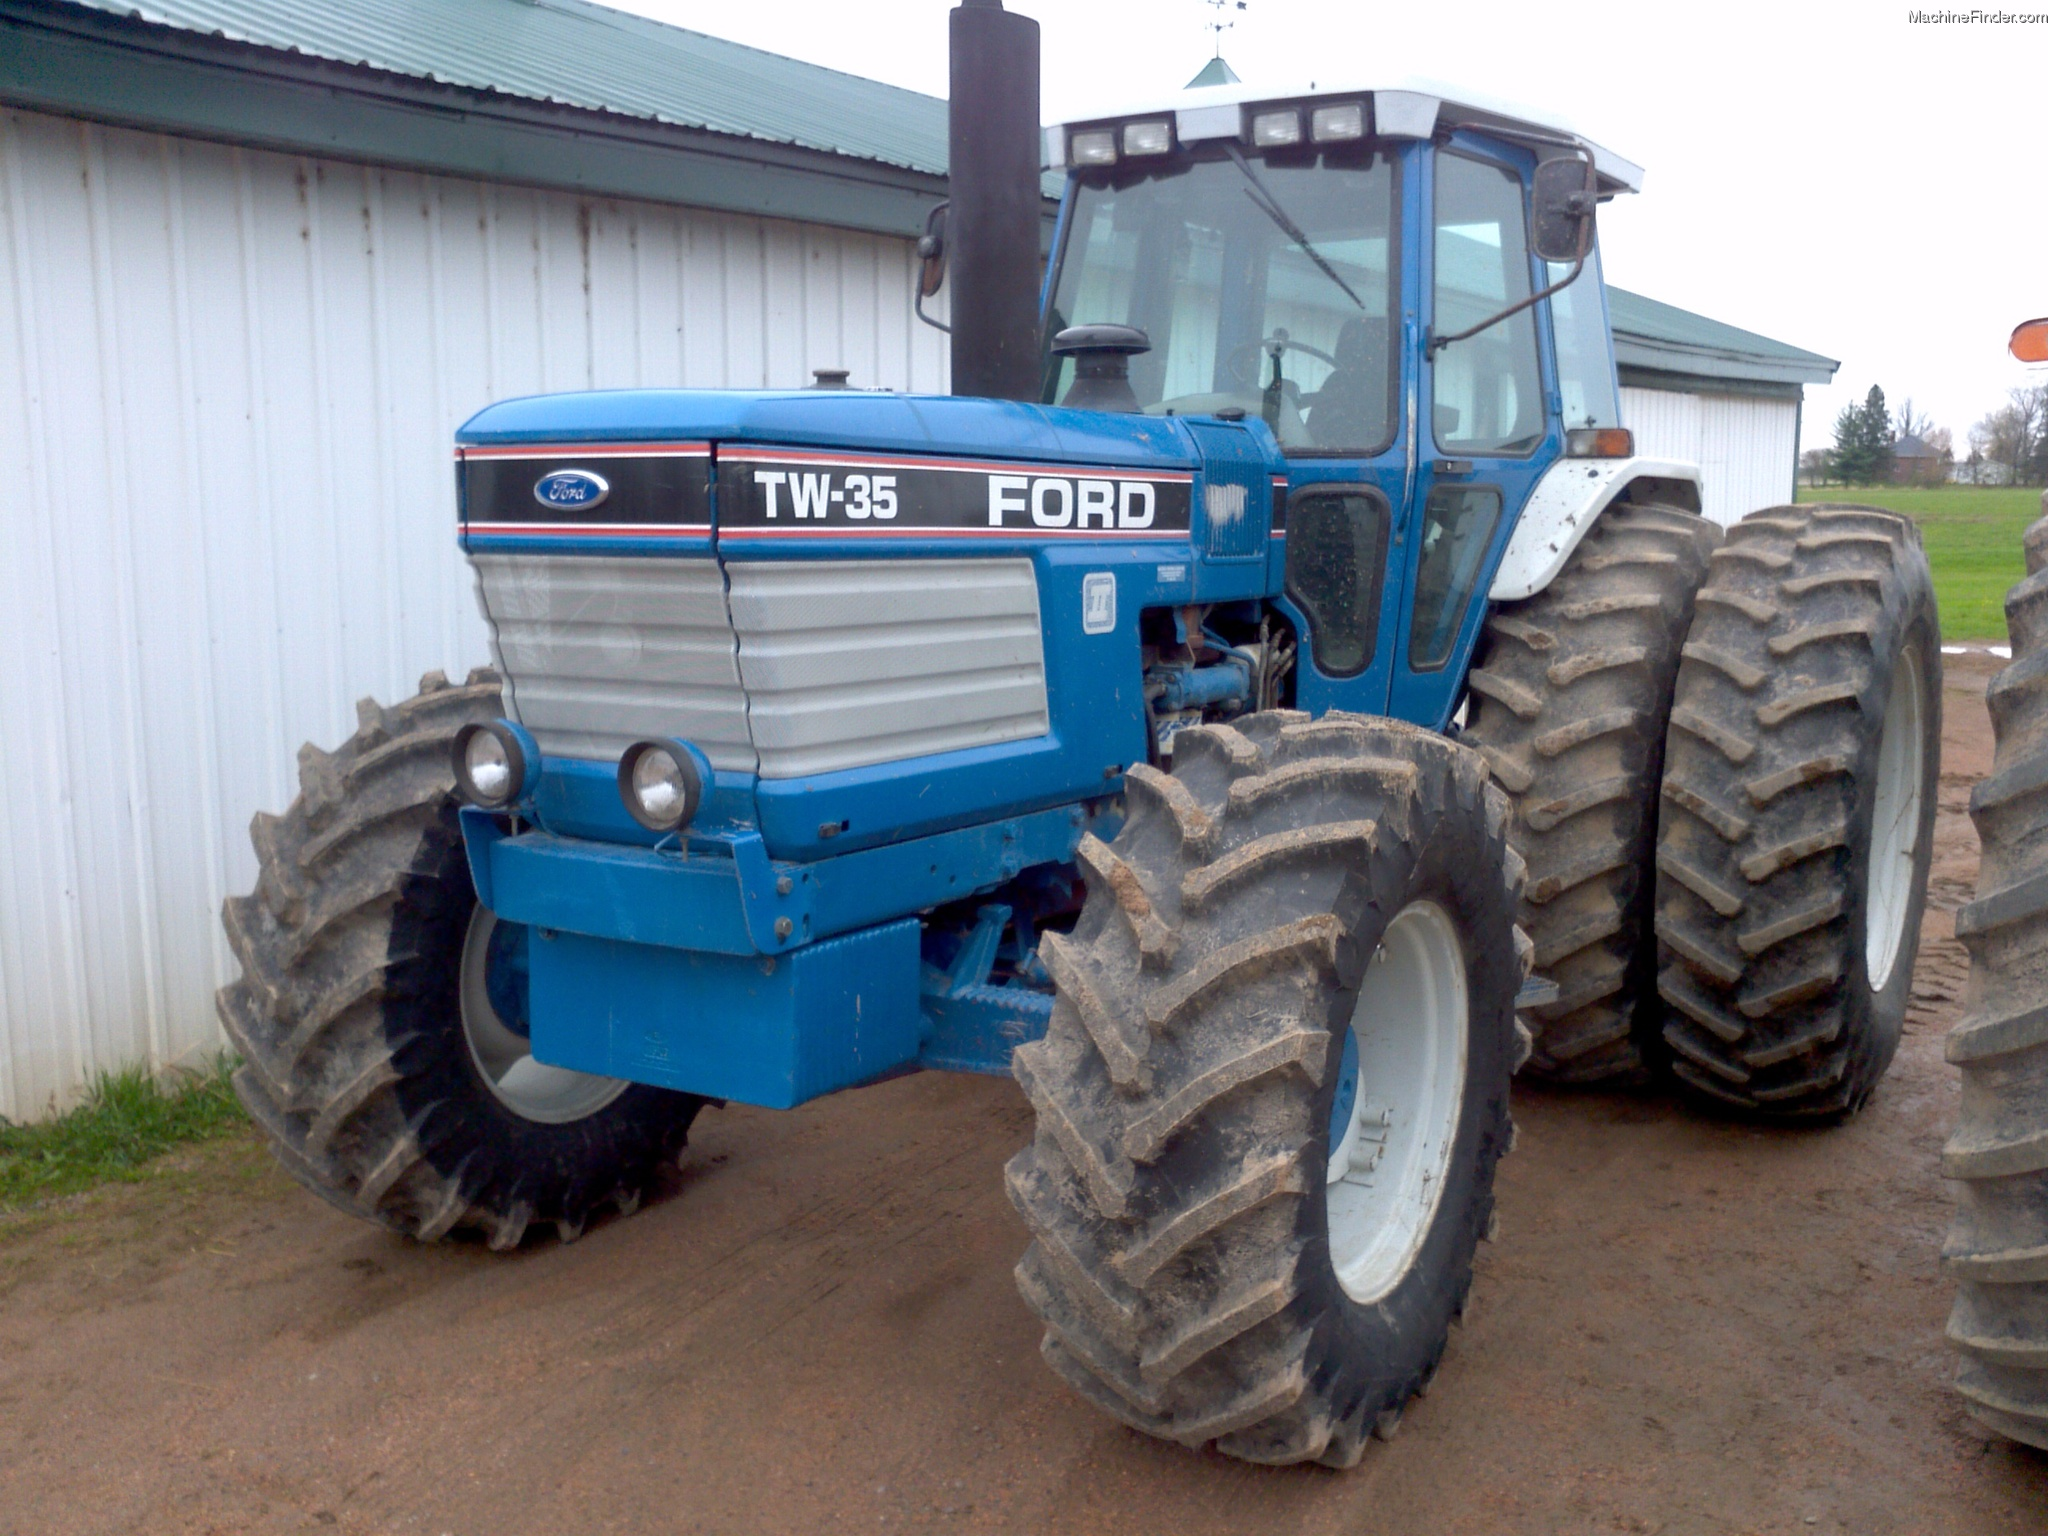 Ford Tw 35 Tractor Parts : Tw ford tractor parts